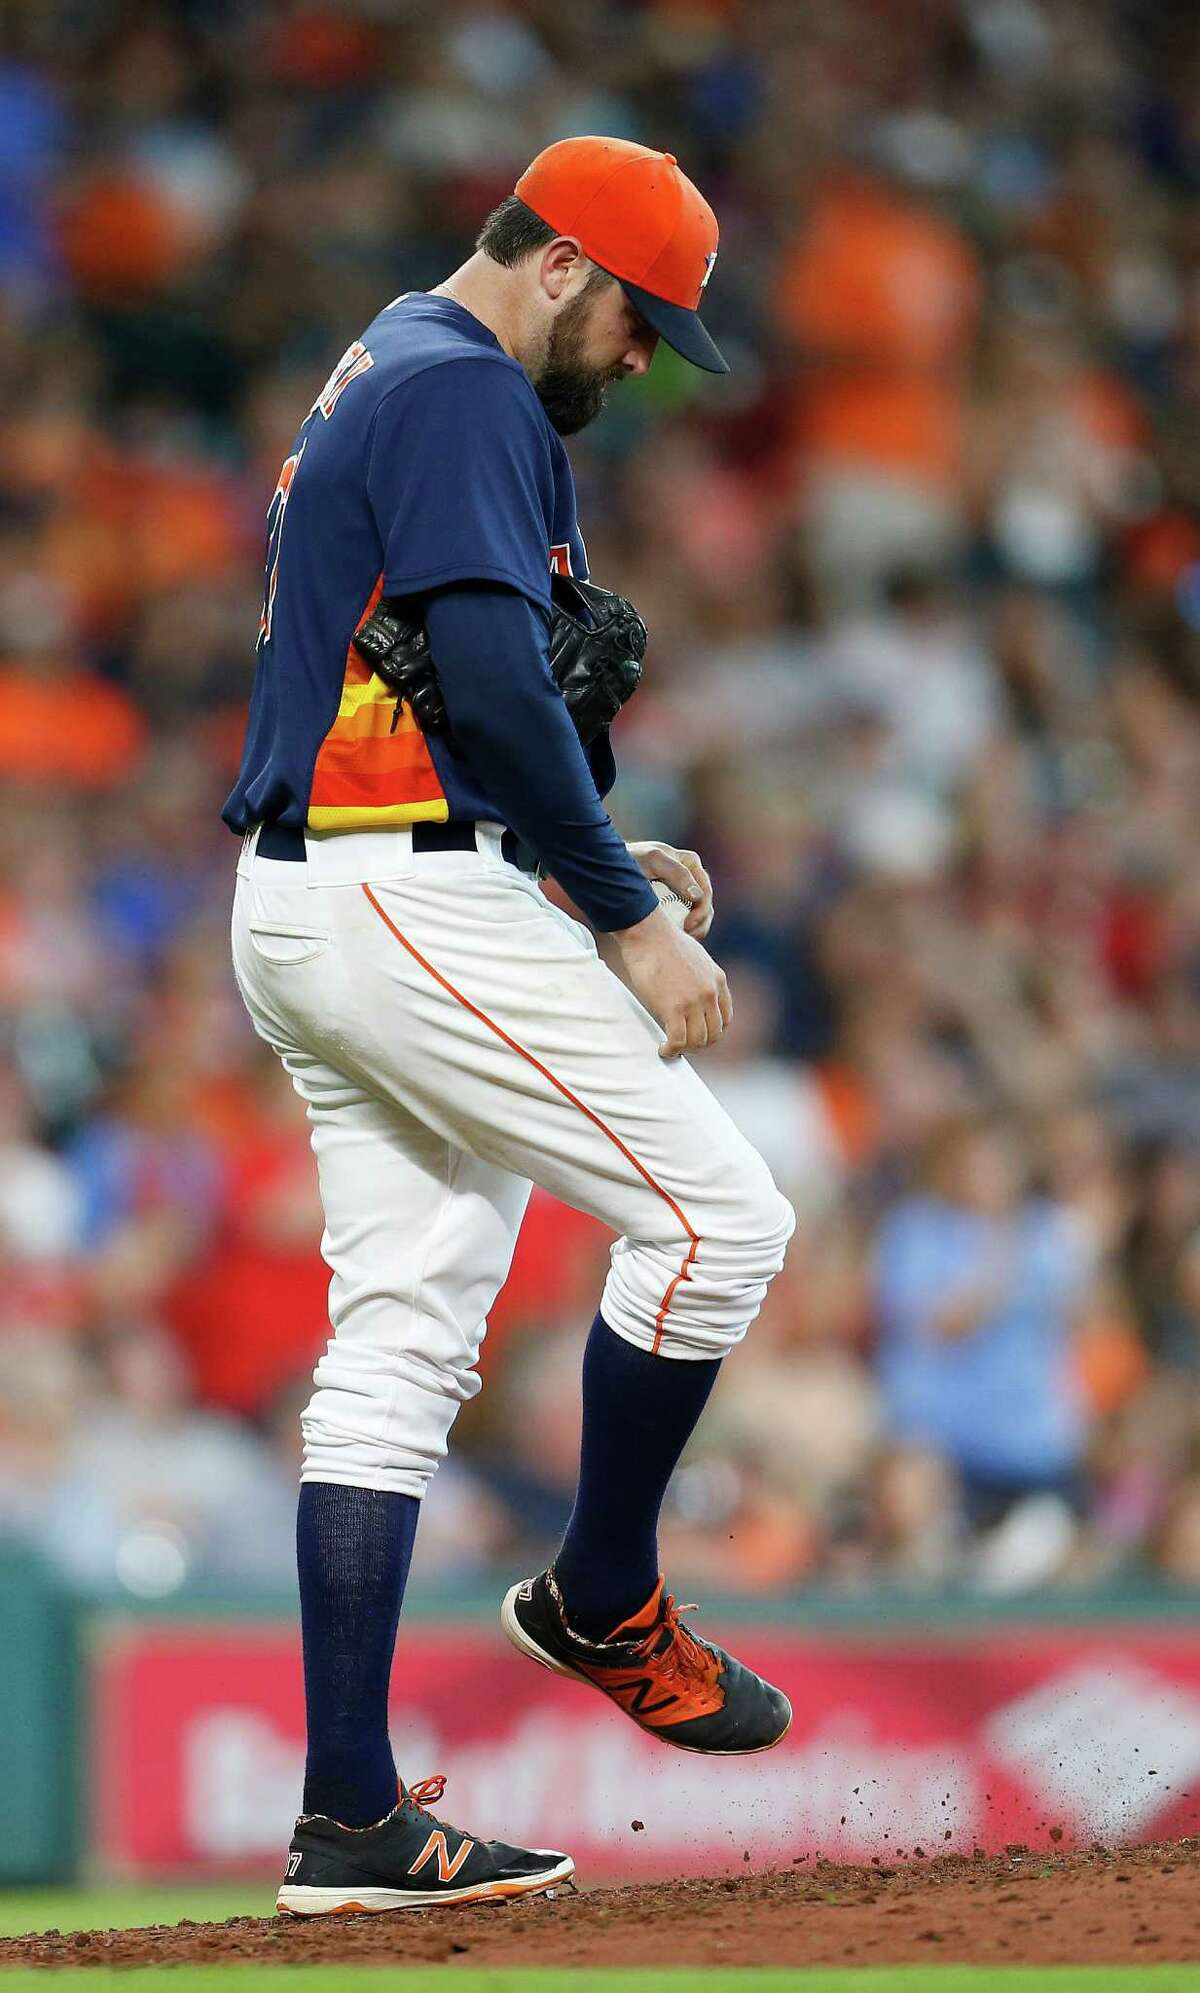 Houston Astros relief pitcher Will Harris (36) reacts after giving up a two-run home run to Texas Rangers Nomar Mazara (30) during the seventh inning of an MLB baseball game at Minute Maid Park, Sunday, May 22, 2016.